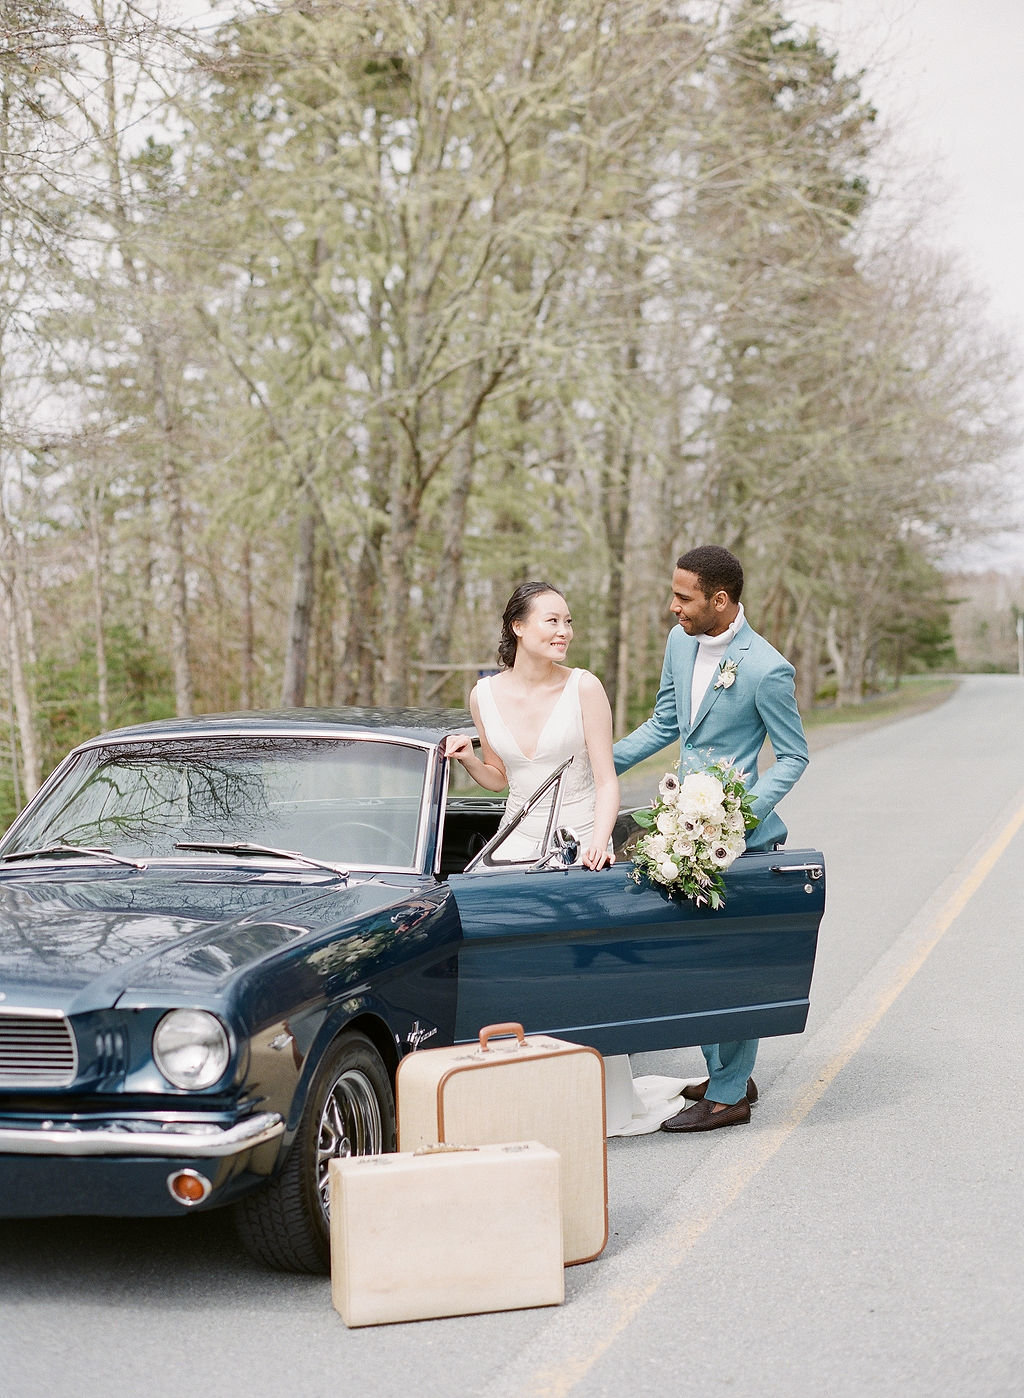 Jacqueline Anne Photography, The One Day Workshop, Halifax Wedding Photographer, Vintage Car